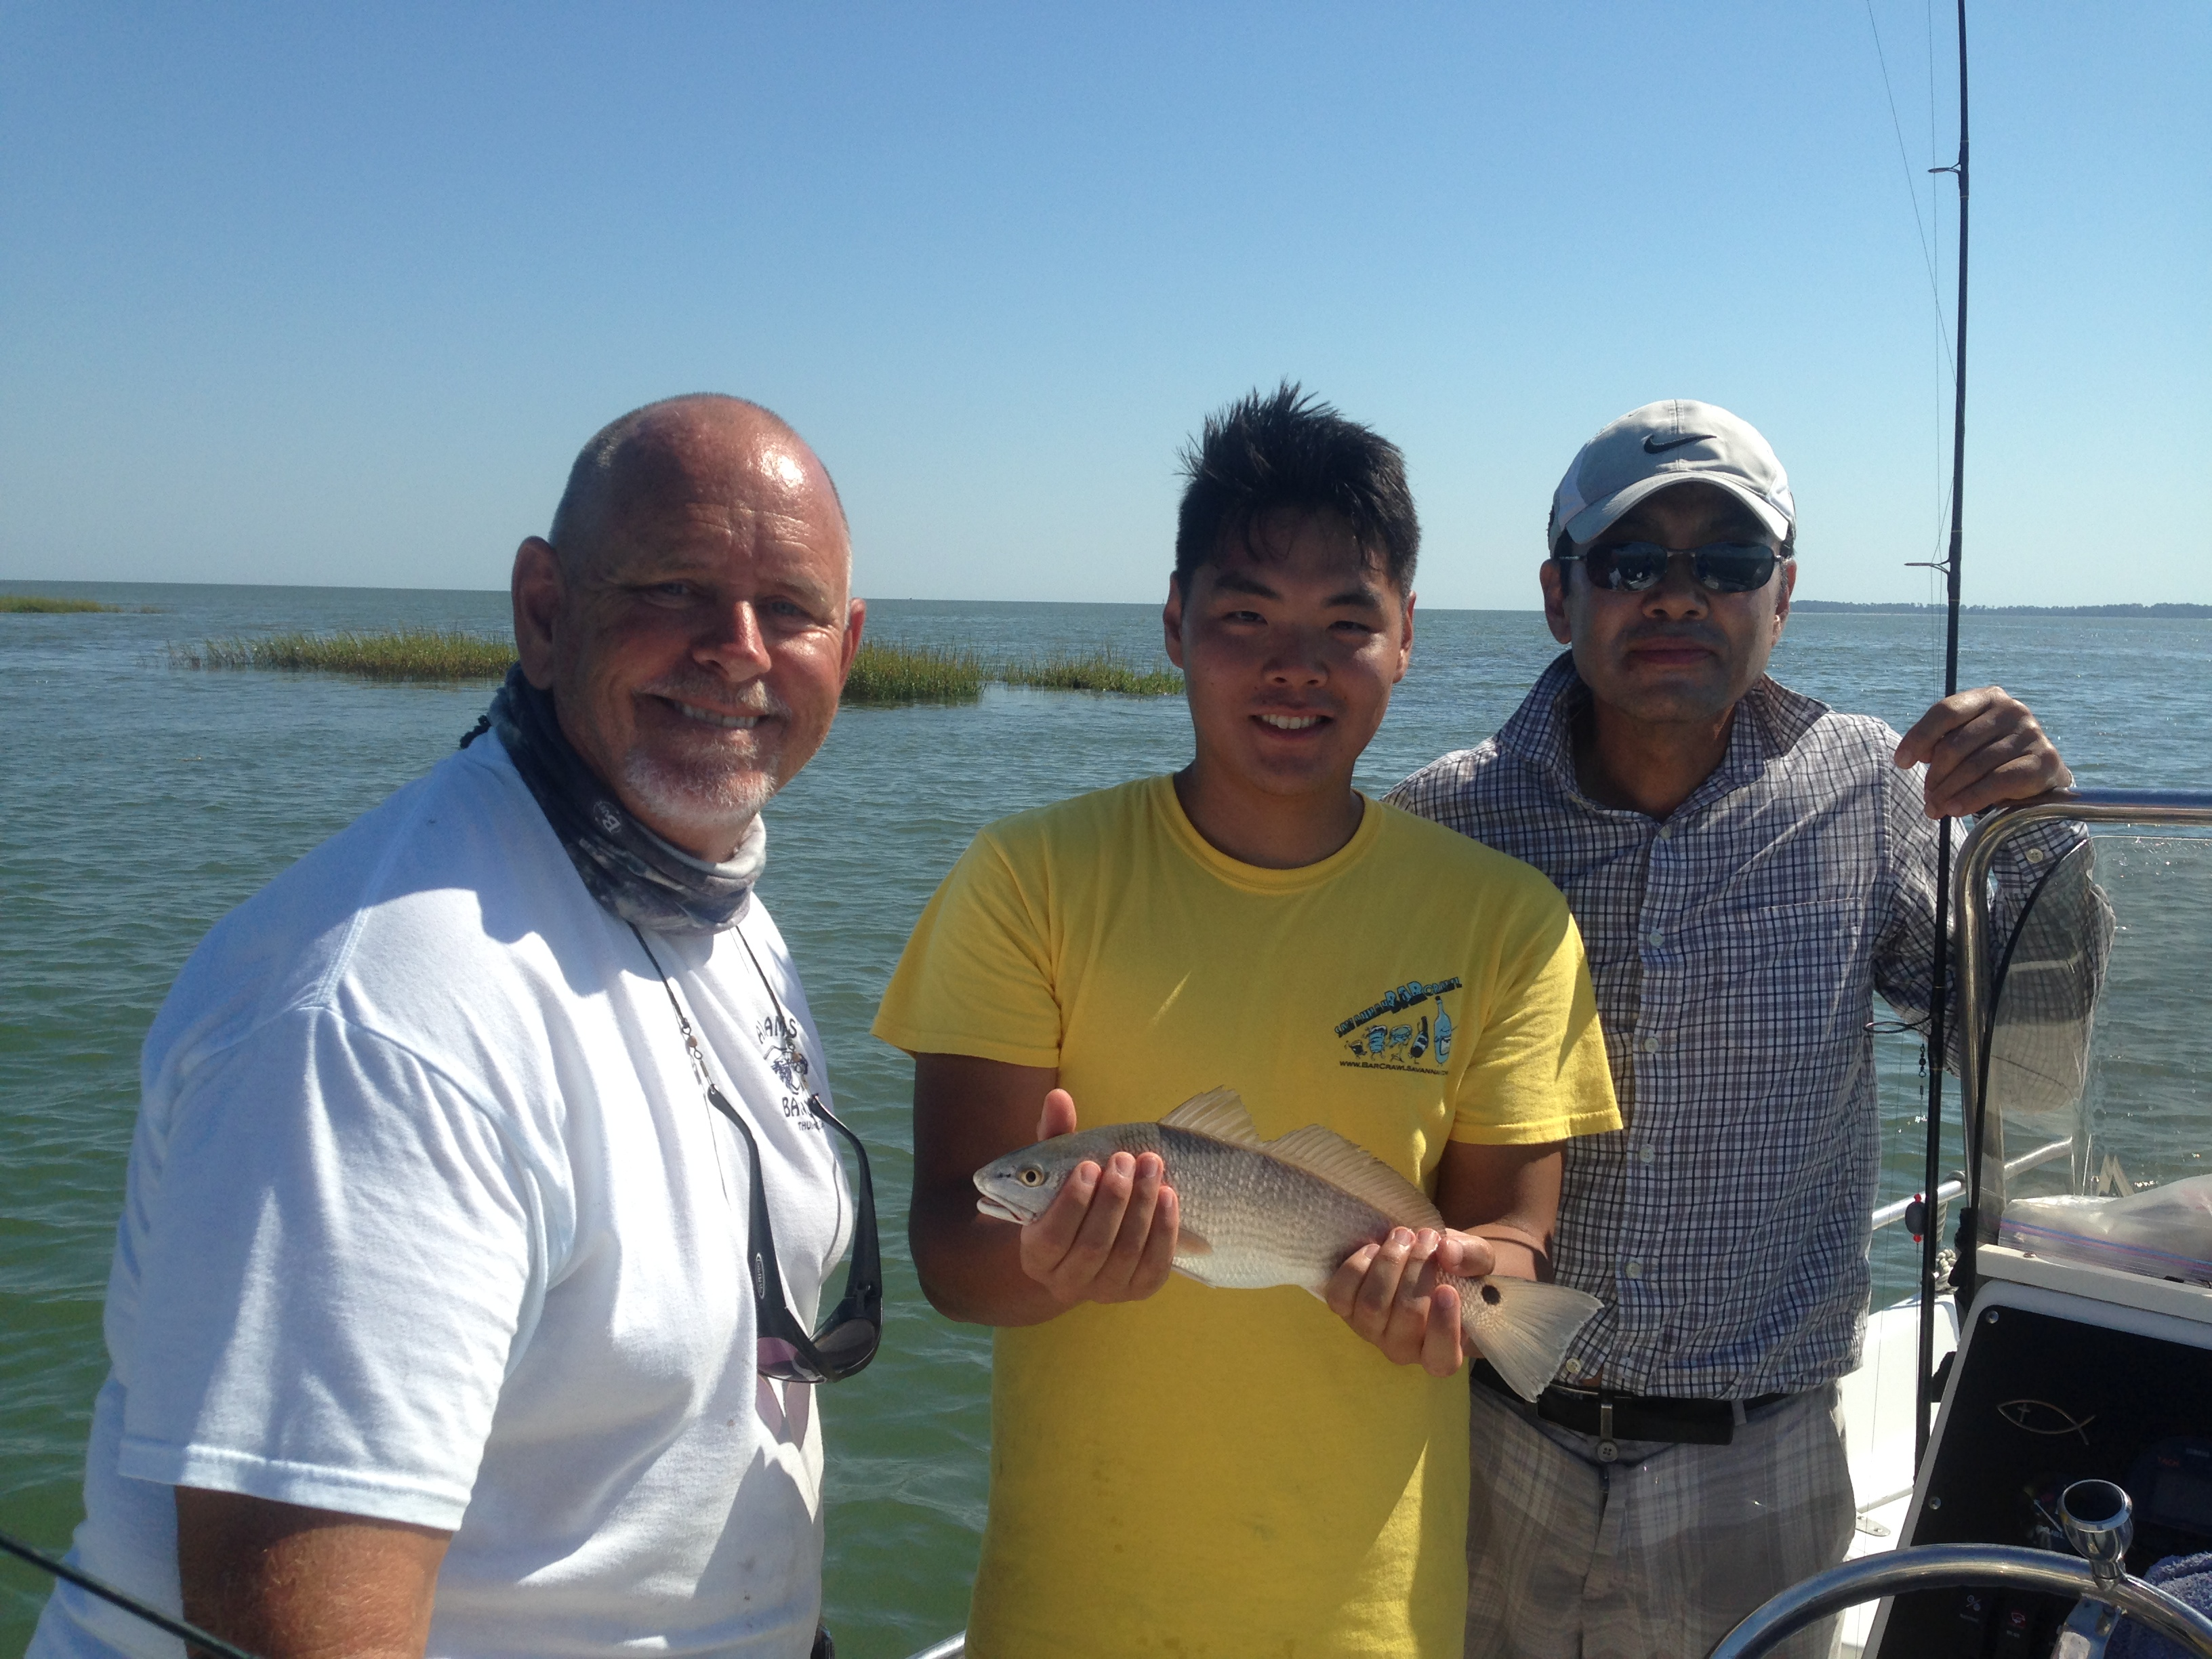 Capt. Jack and Peter Yoon with a schoolie red